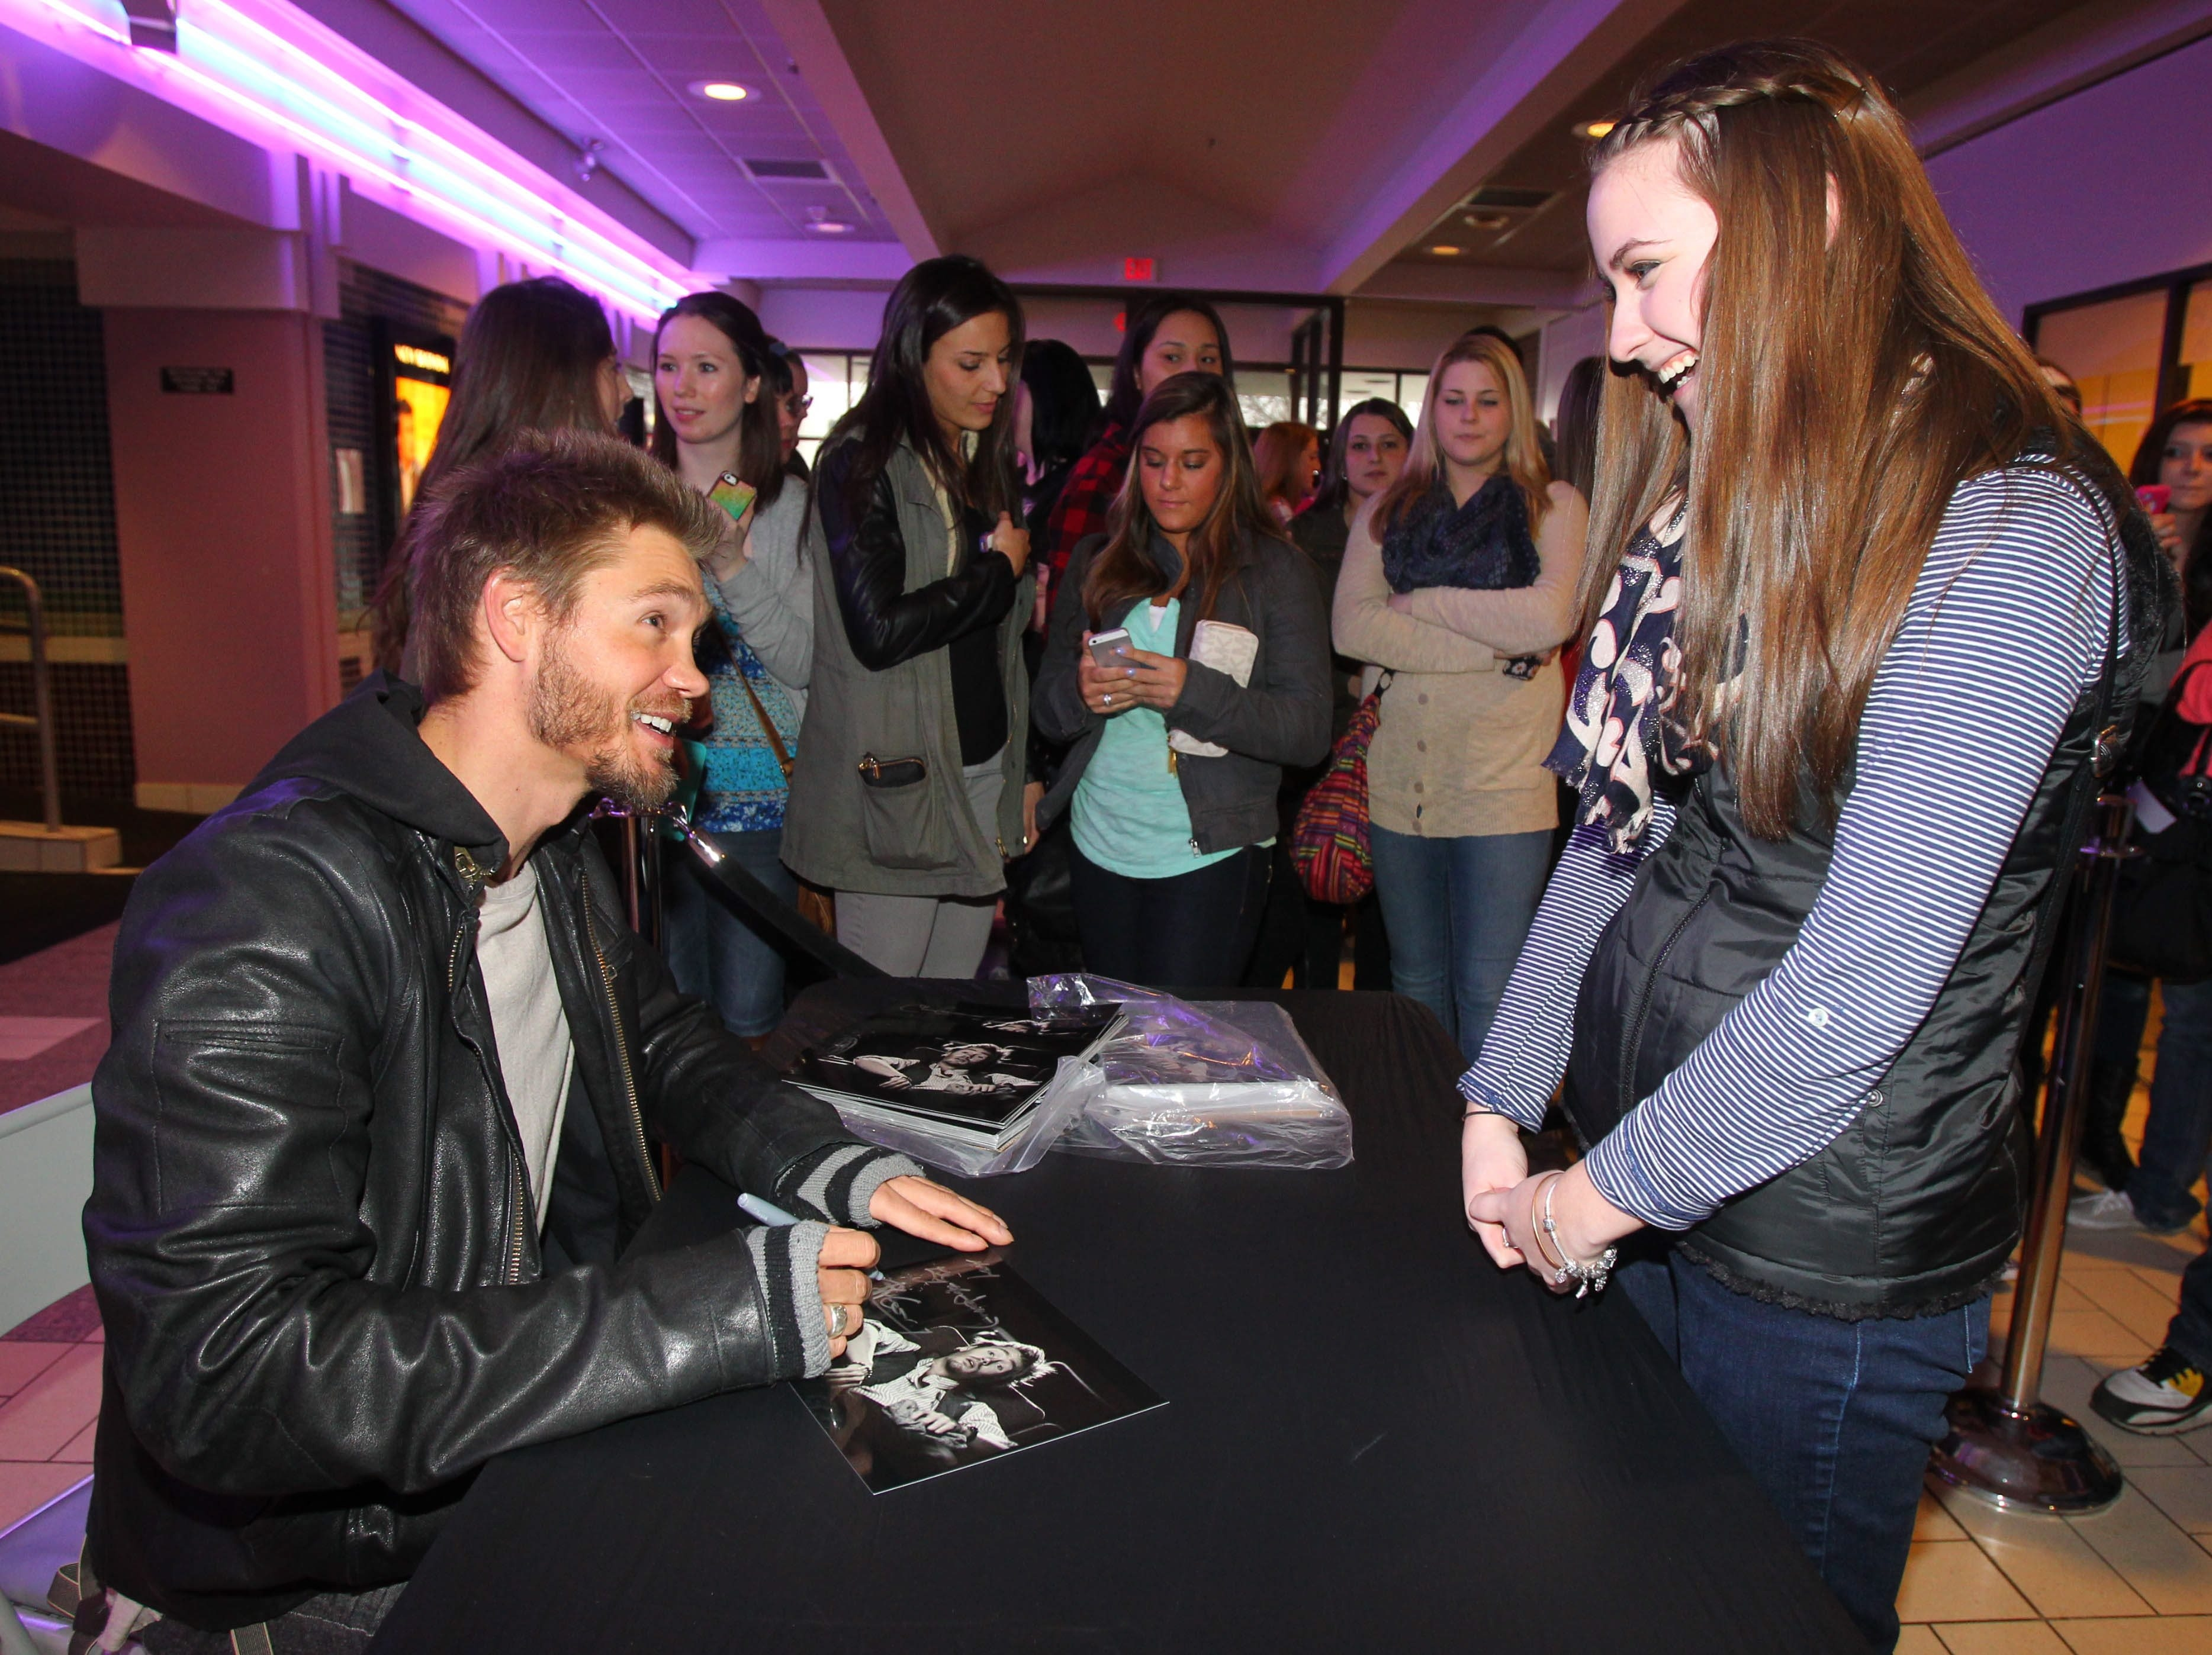 Chad Michael Murray signs an autograph for Mady Loiacano, one of the many fans who came to see him in Eastern Hills Mall on Friday.